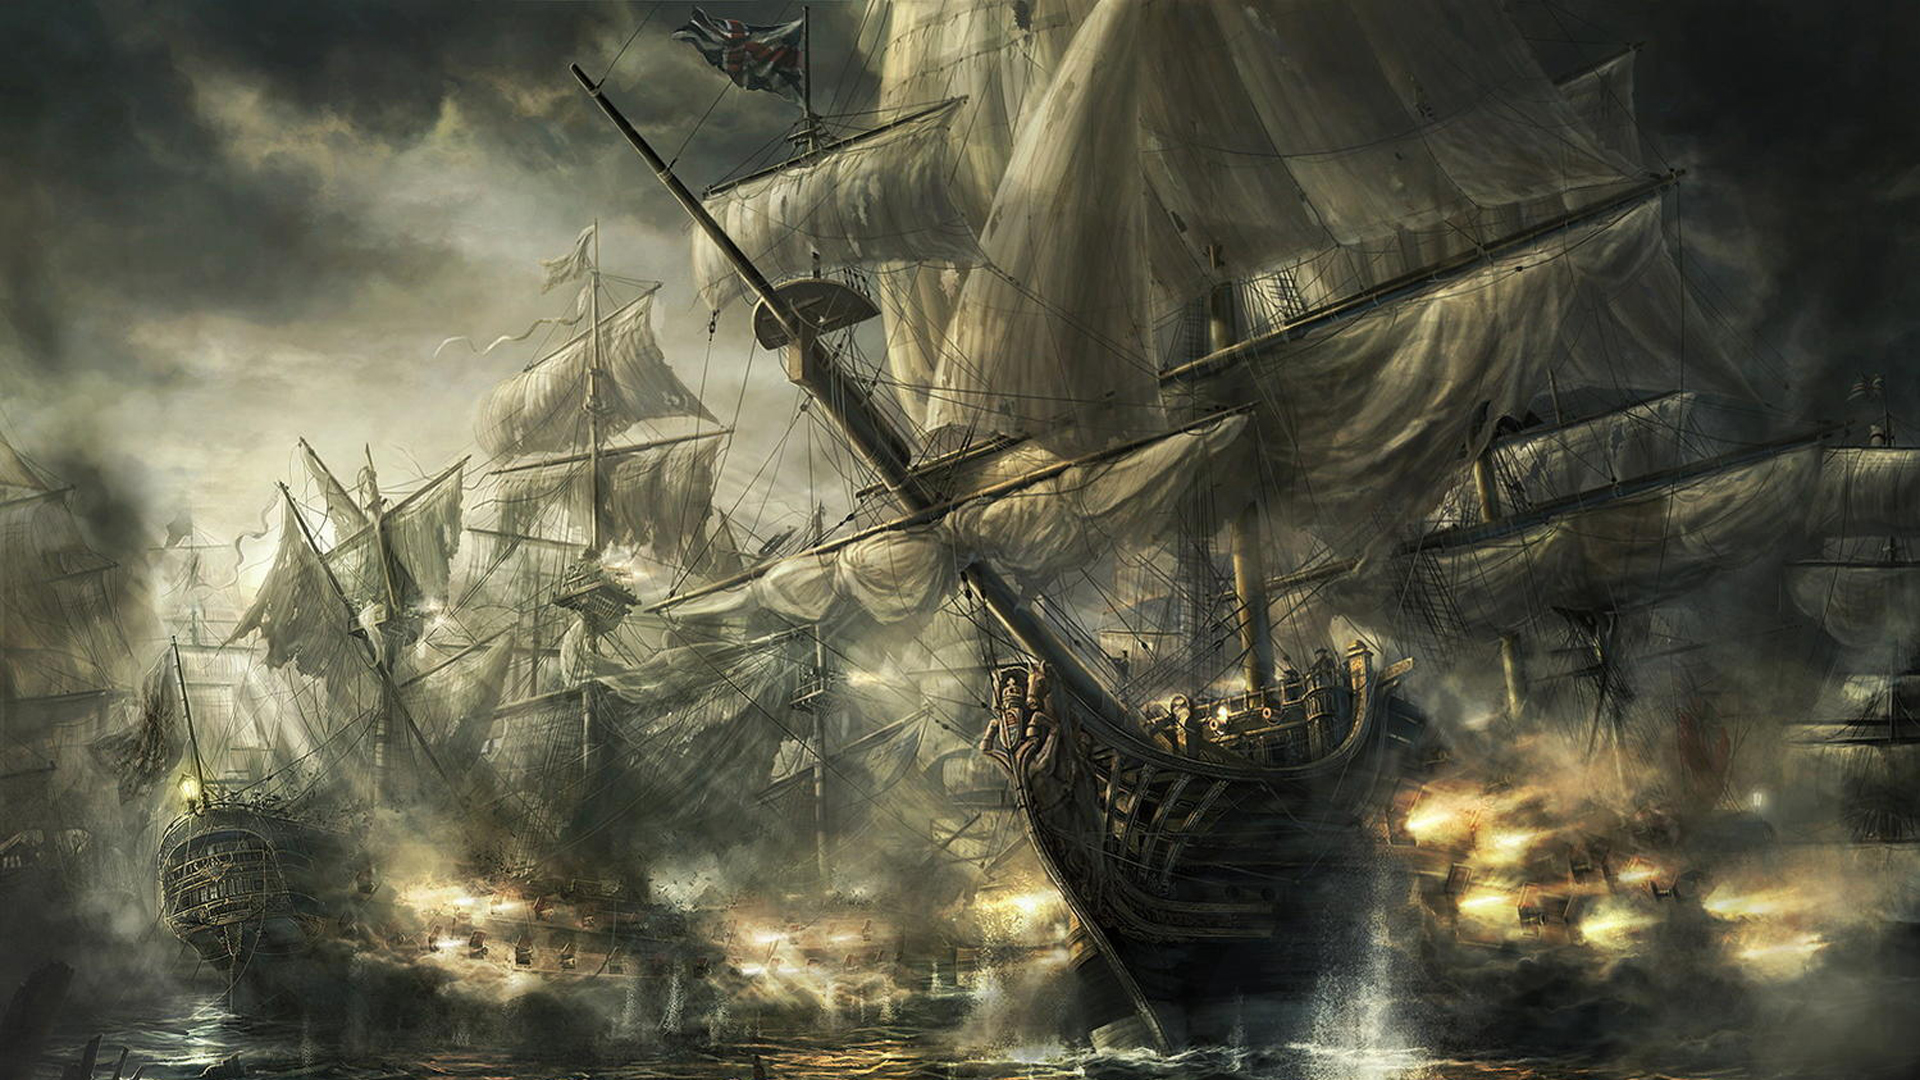 Artistic - Painting  Empire Total War Video Game Wallpaper